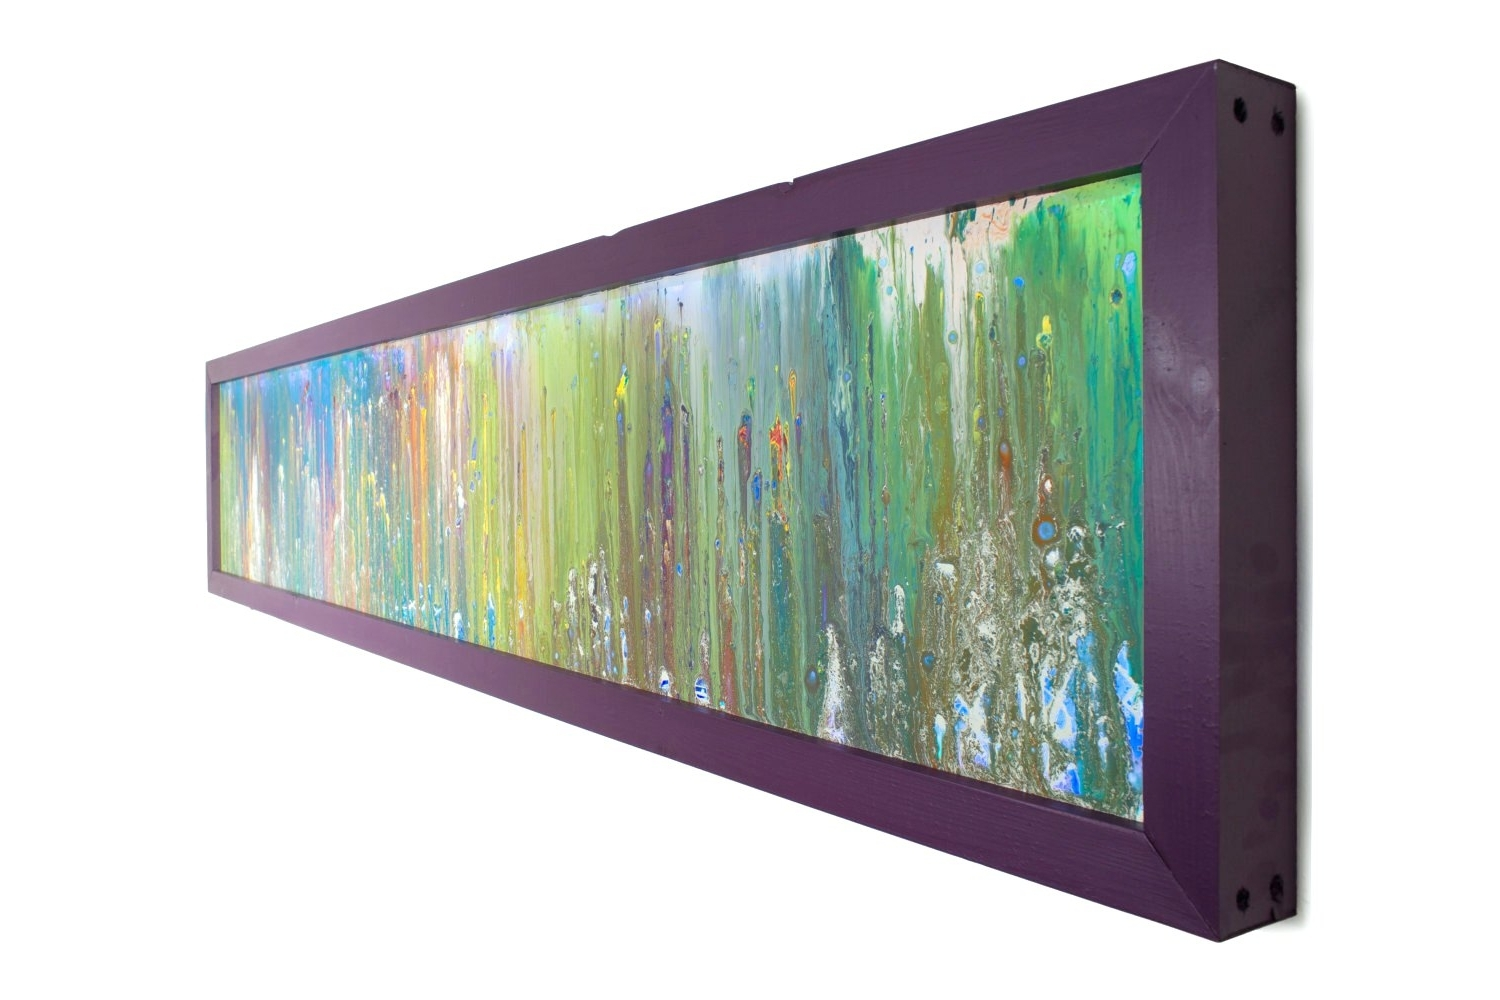 2018 best of large fused glass wall art for Large glass wall